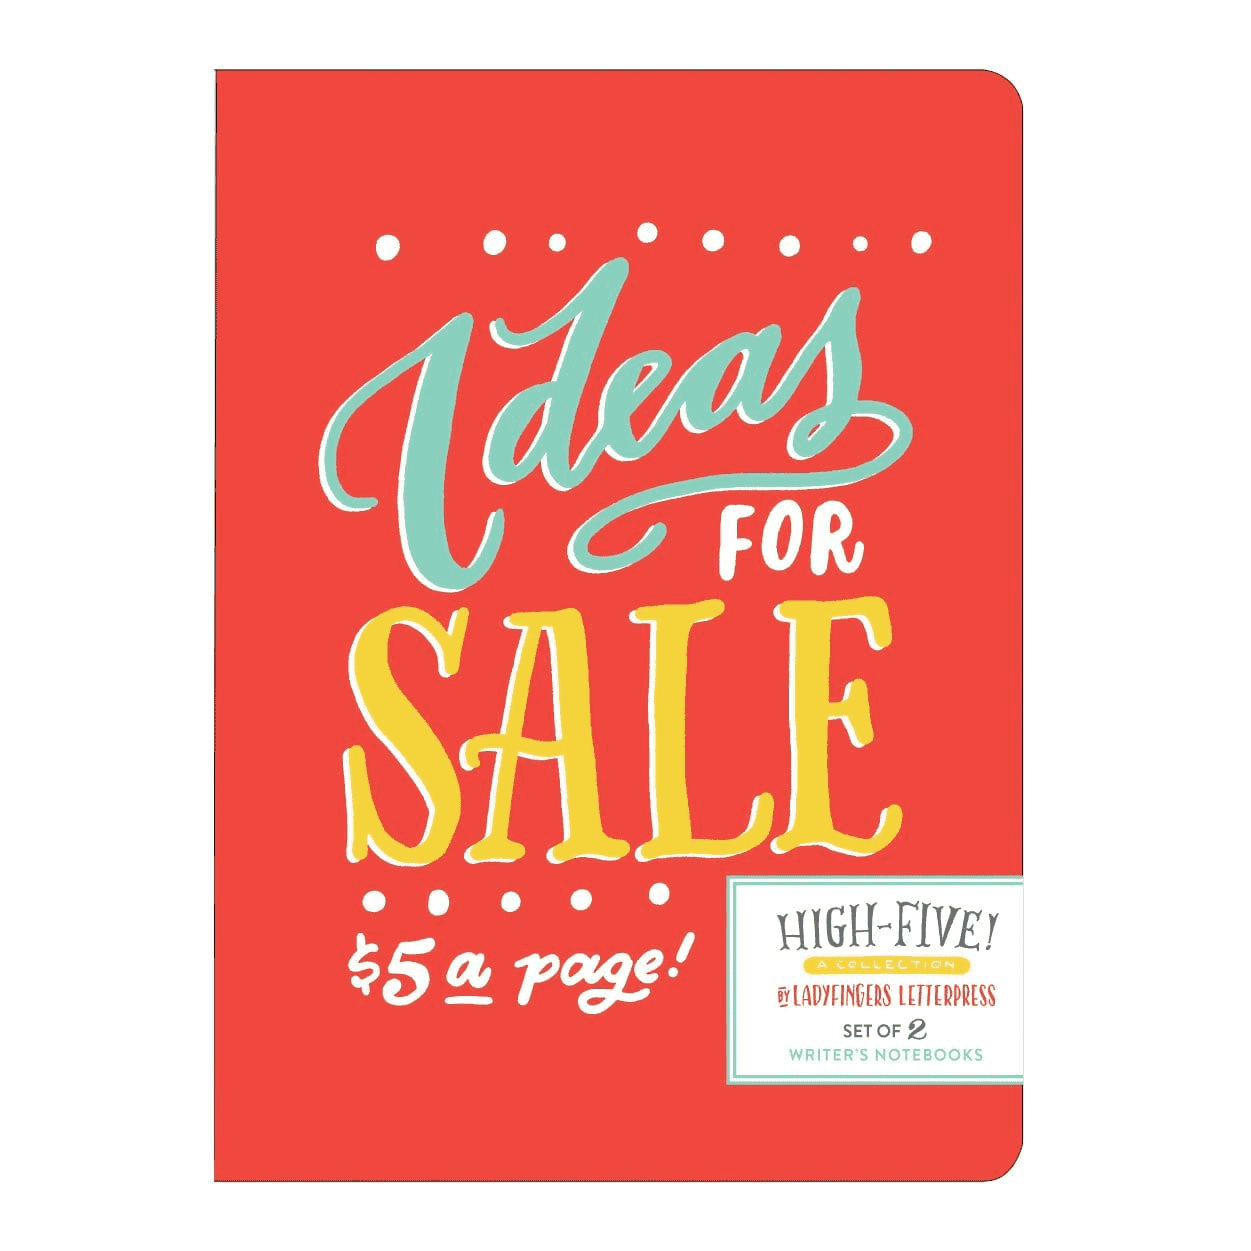 High Five by Ladyfingers Letterpress Writer's Notebook Set Sale Galison